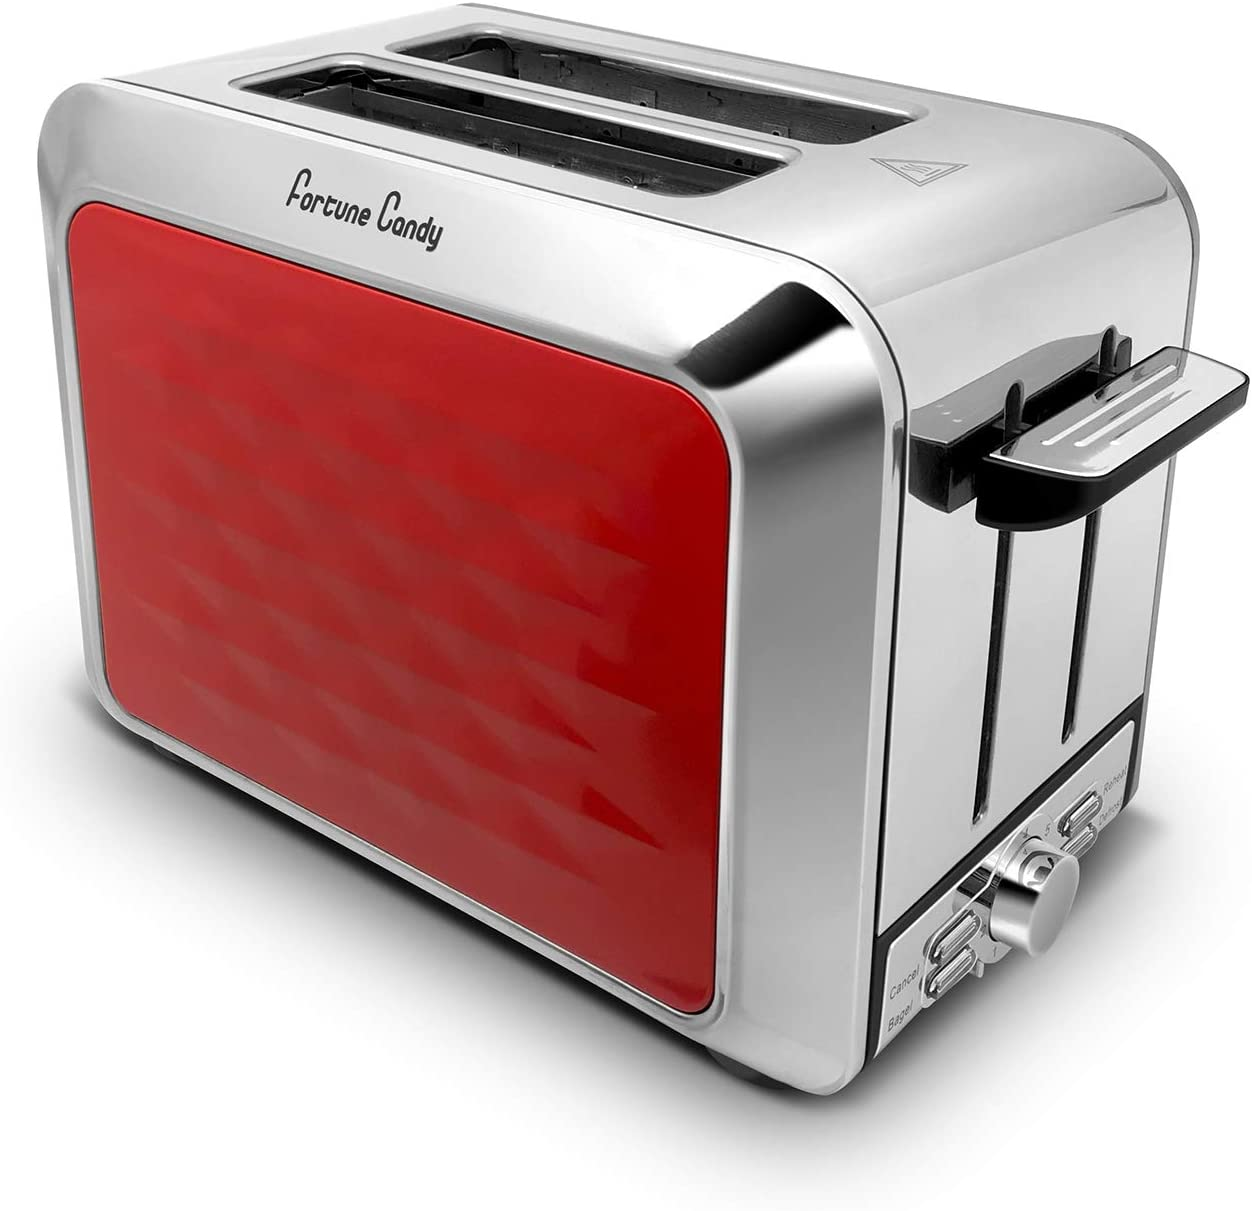 Fortune Candy Toaster, Diamond Pattern, 2 Slice, Stainless Steel, Toaster for Bagels, Wide Slots Toaster (Red)